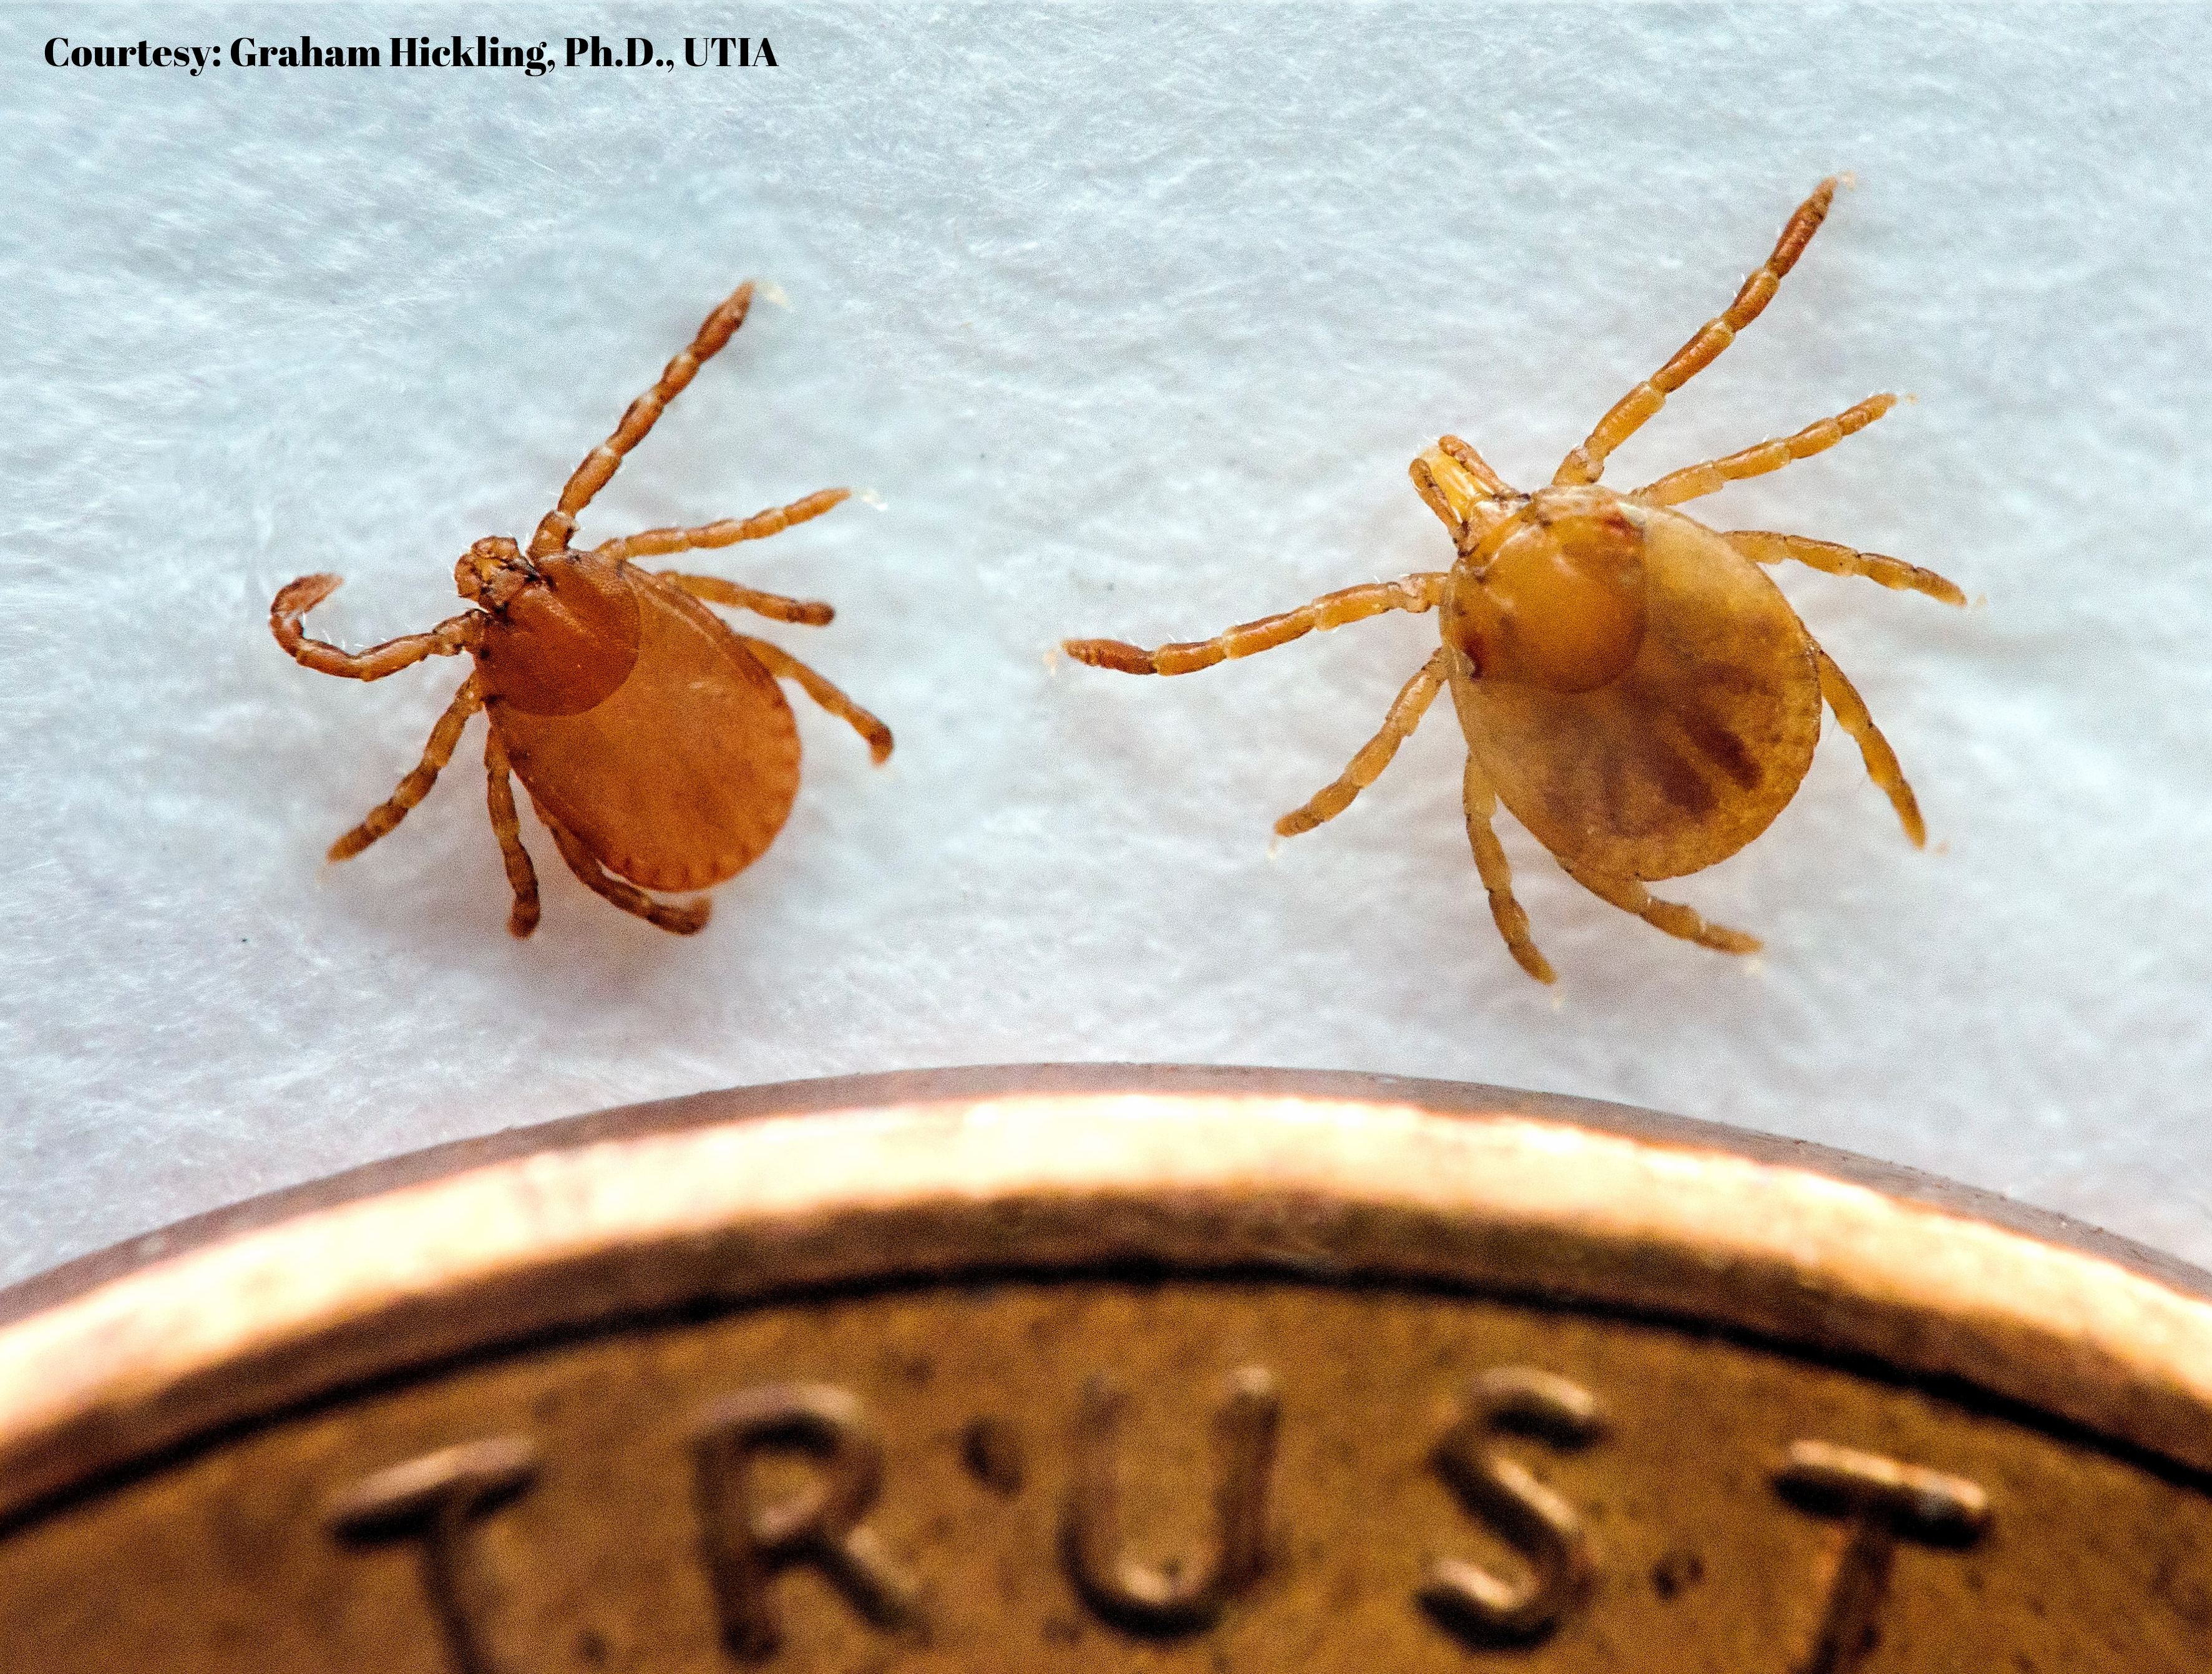 Invasive Tick Detected in Tennessee - The Tennessee Department of Agriculture, United States Department of Agriculture – Animal and Plant Health Inspection Services, Tennessee Department of Health, and University of Tennessee Institute of Agriculture (UTIA) today announced the detection of the invasive Asian longhorned tick in Tennessee. #AsianLonghornedTick